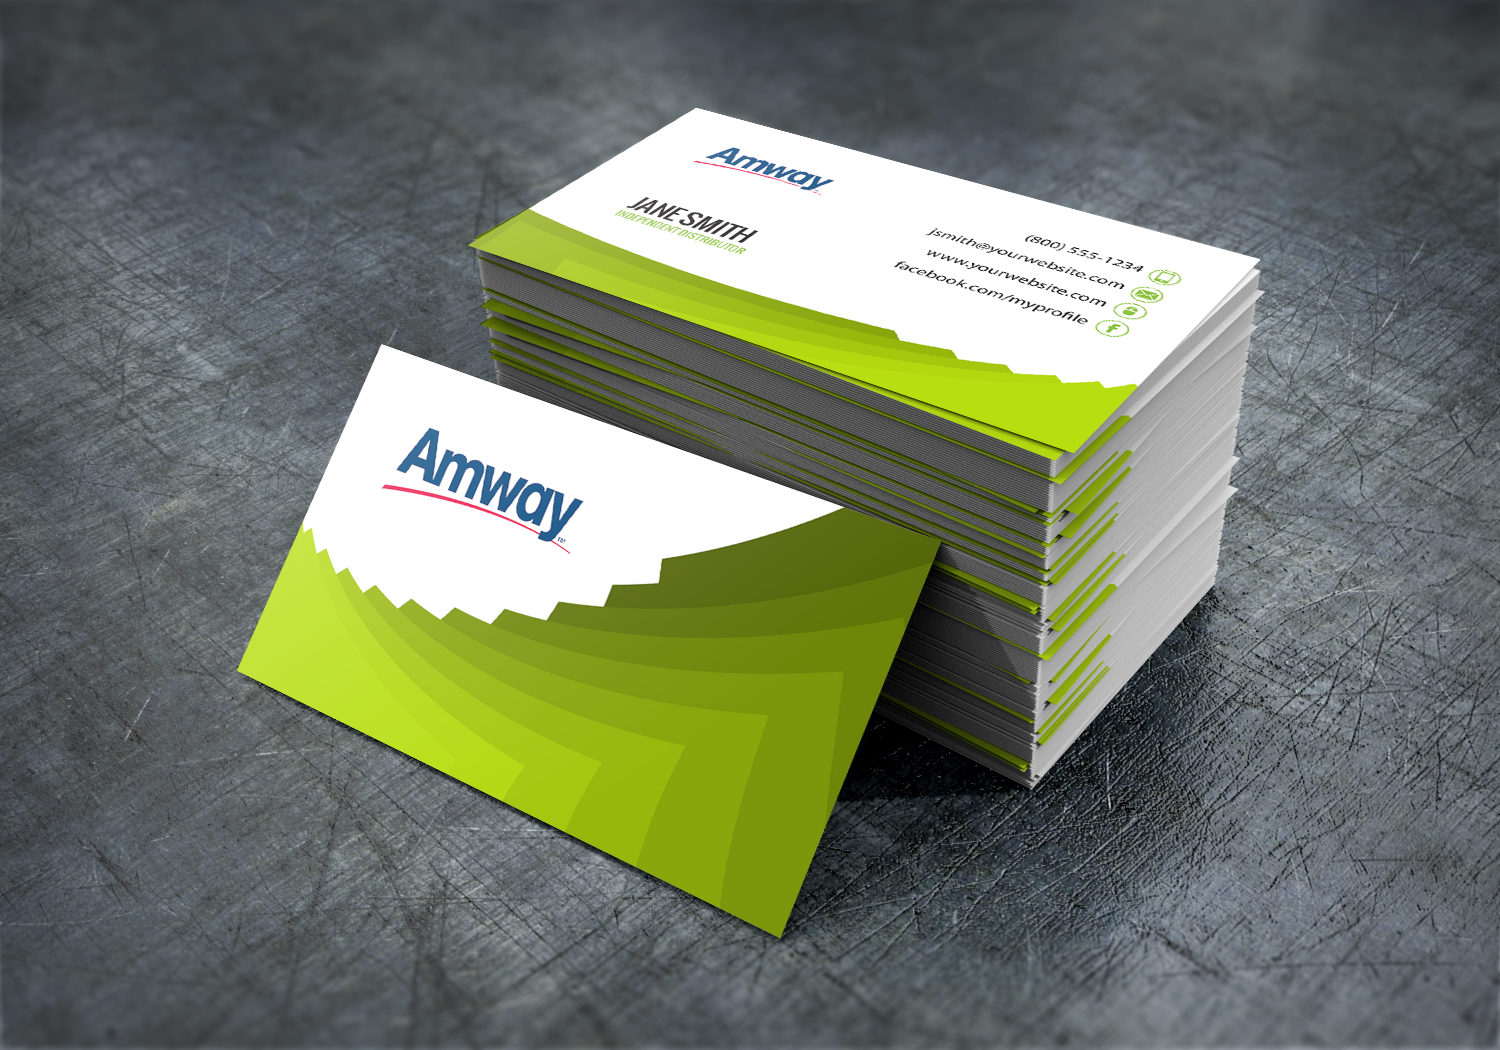 If You Re An Amway Business Owner You Need An Amway Business Card Mlm Amway Print Paper Graphicdesign Businesscar Amway Amway Business Business Cards